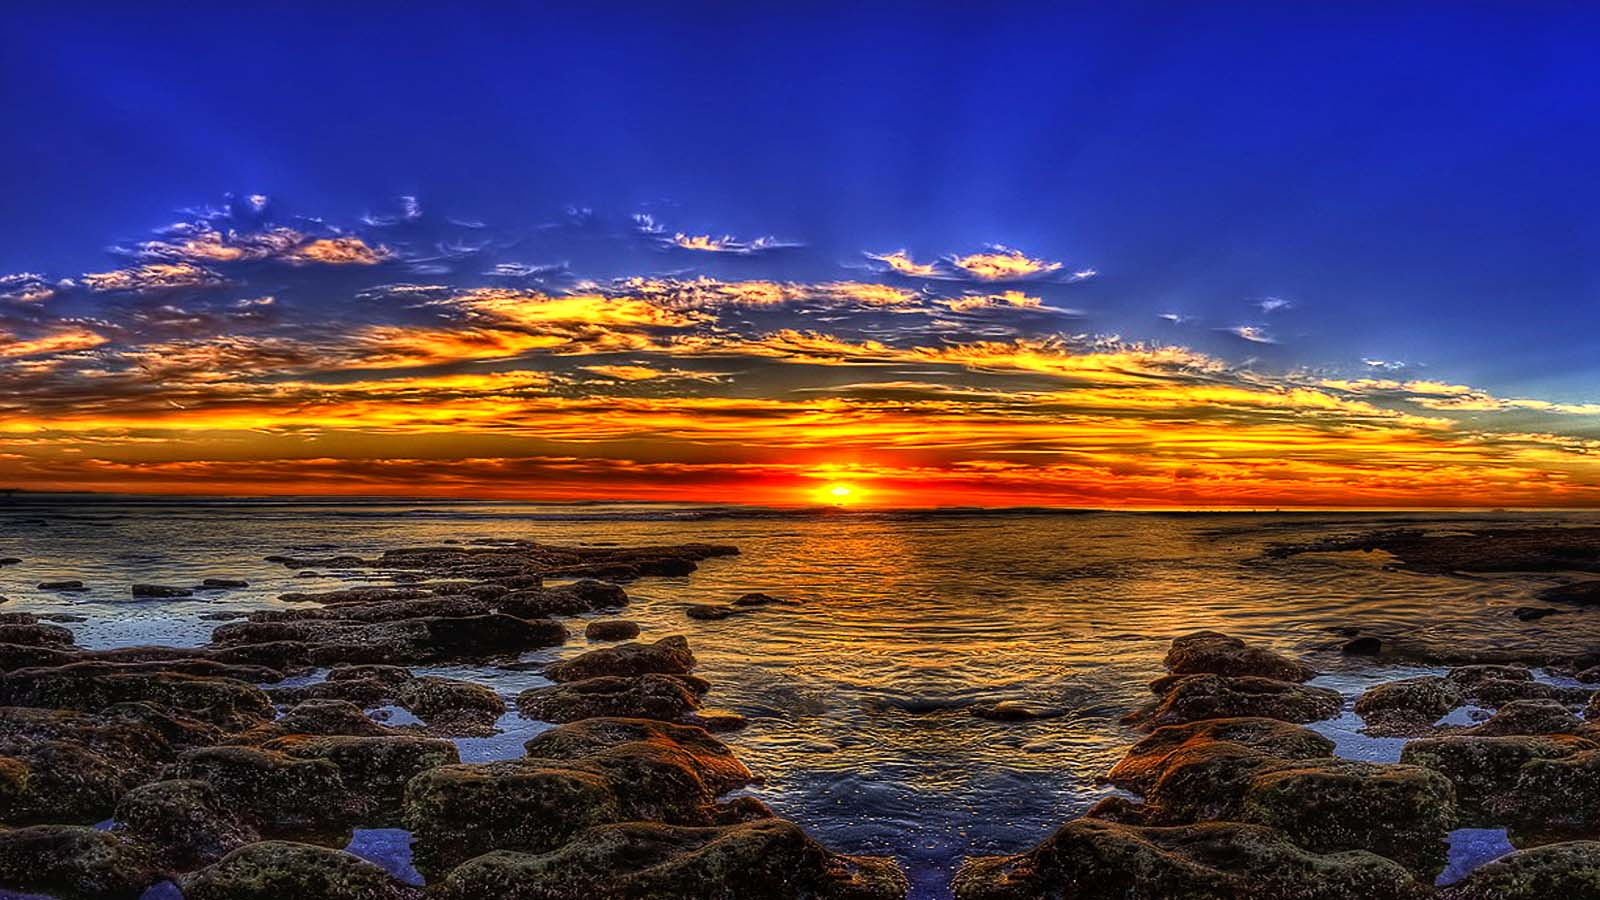 Hdr backgrounds wallpaper cave - Wallpapers 1600x900 ...